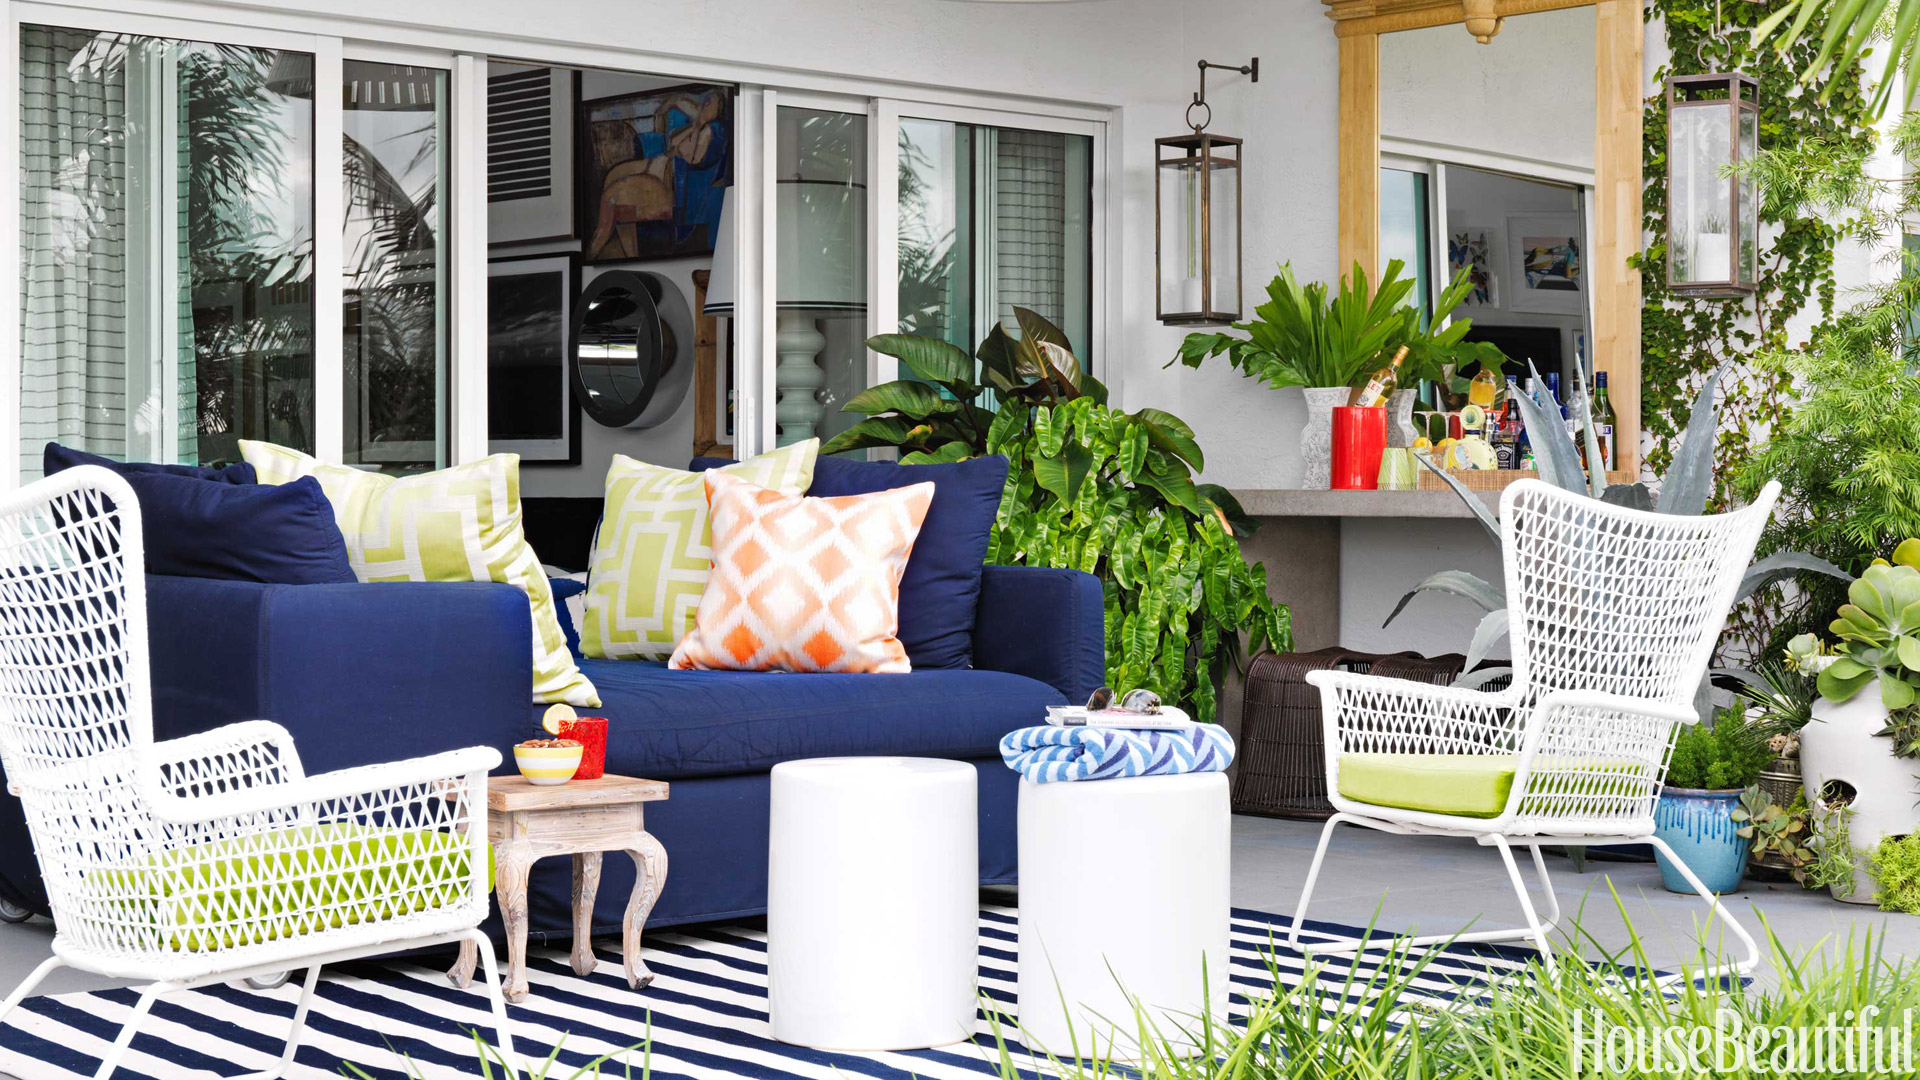 Colorful Outdoor Deck Decorating Ideas: Colorful Patio Decorating Ideas